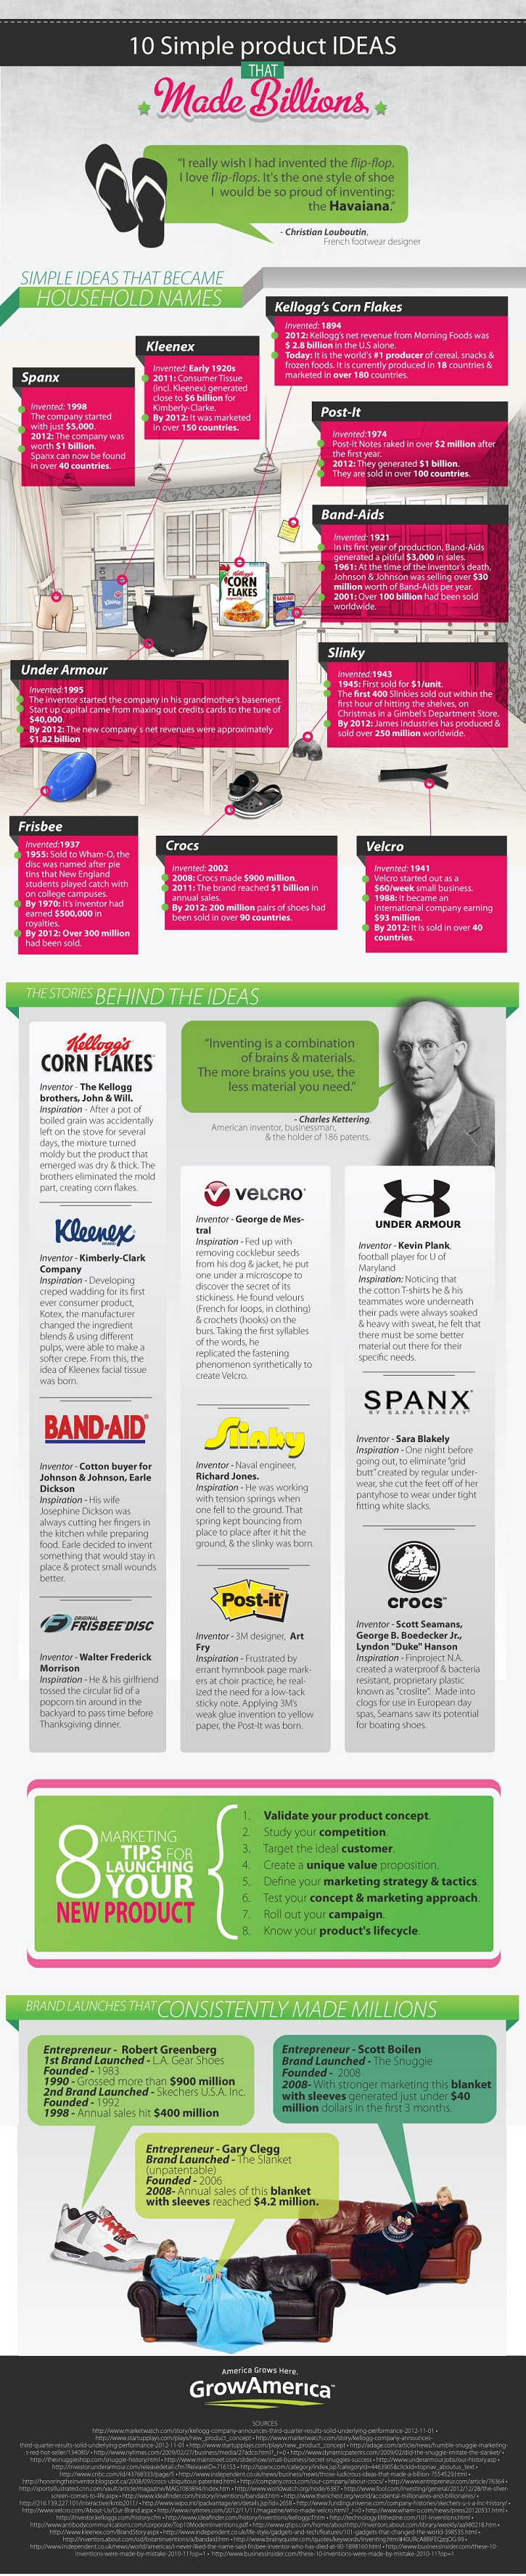 Top Product Brands of all Time